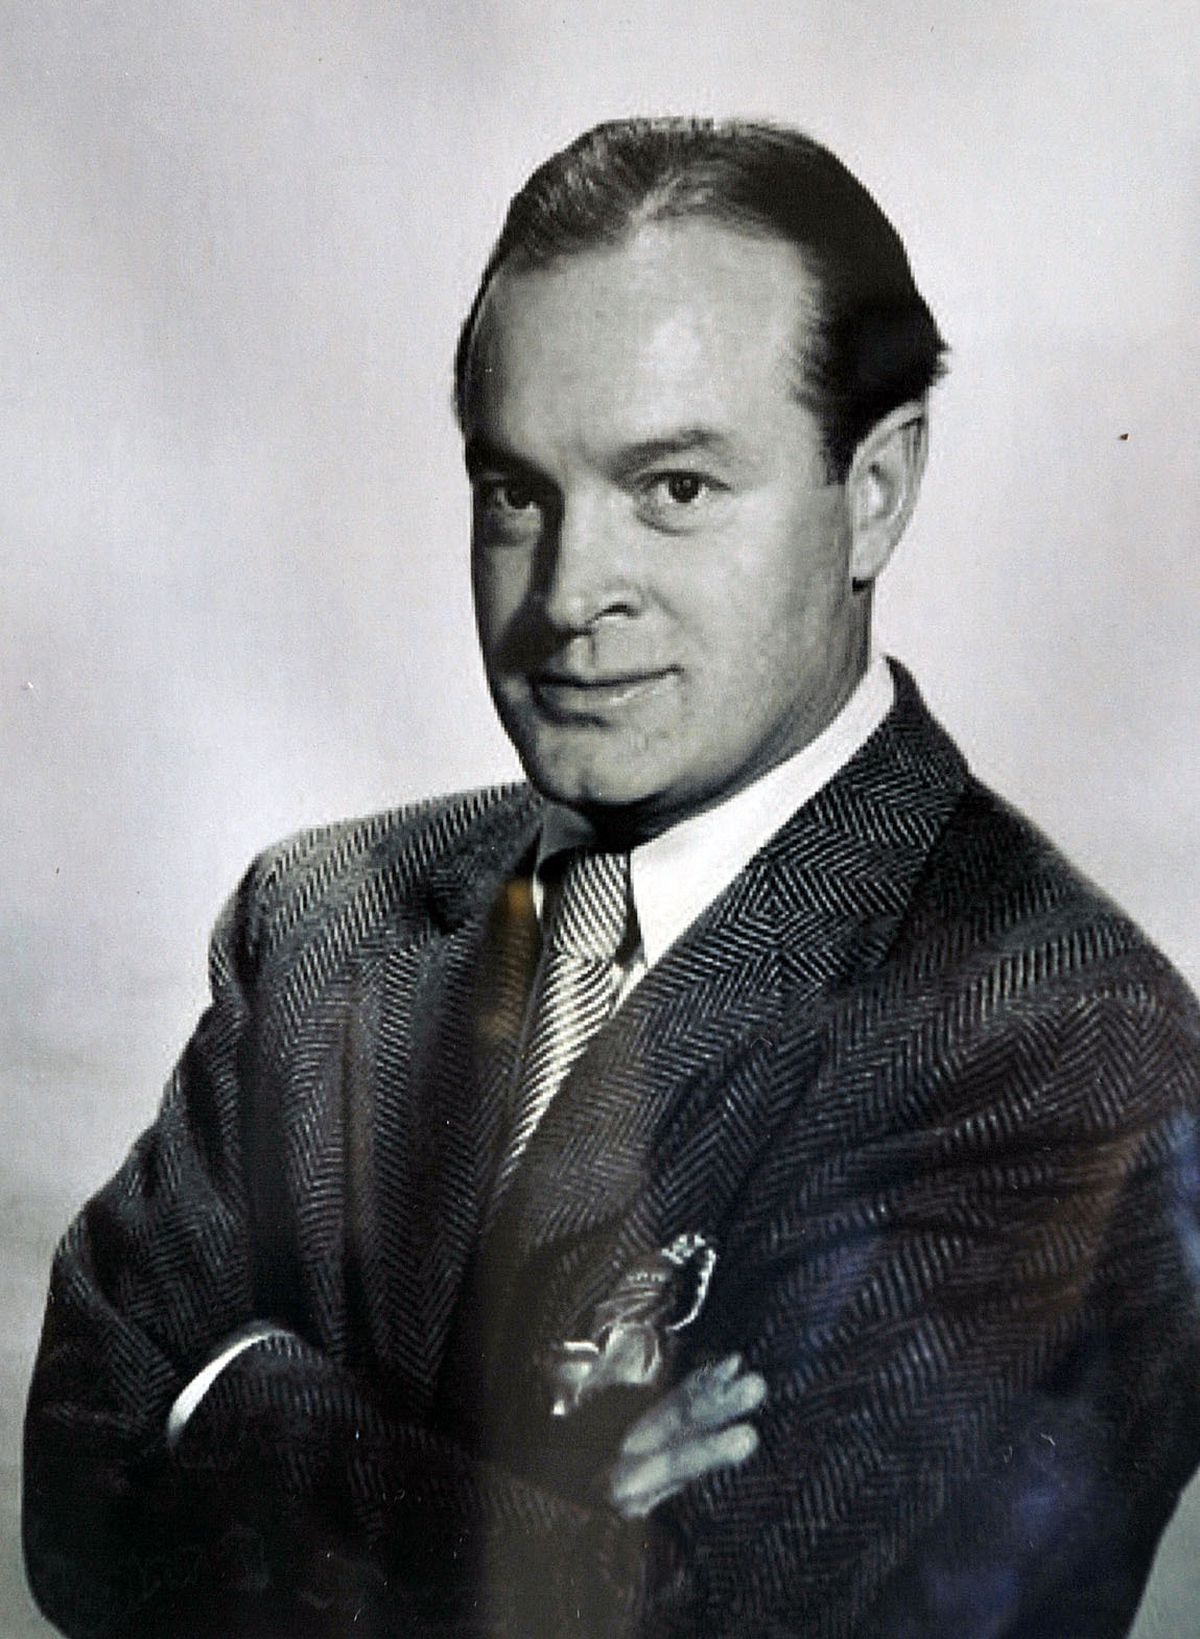 Bob Hope stayed at the Station